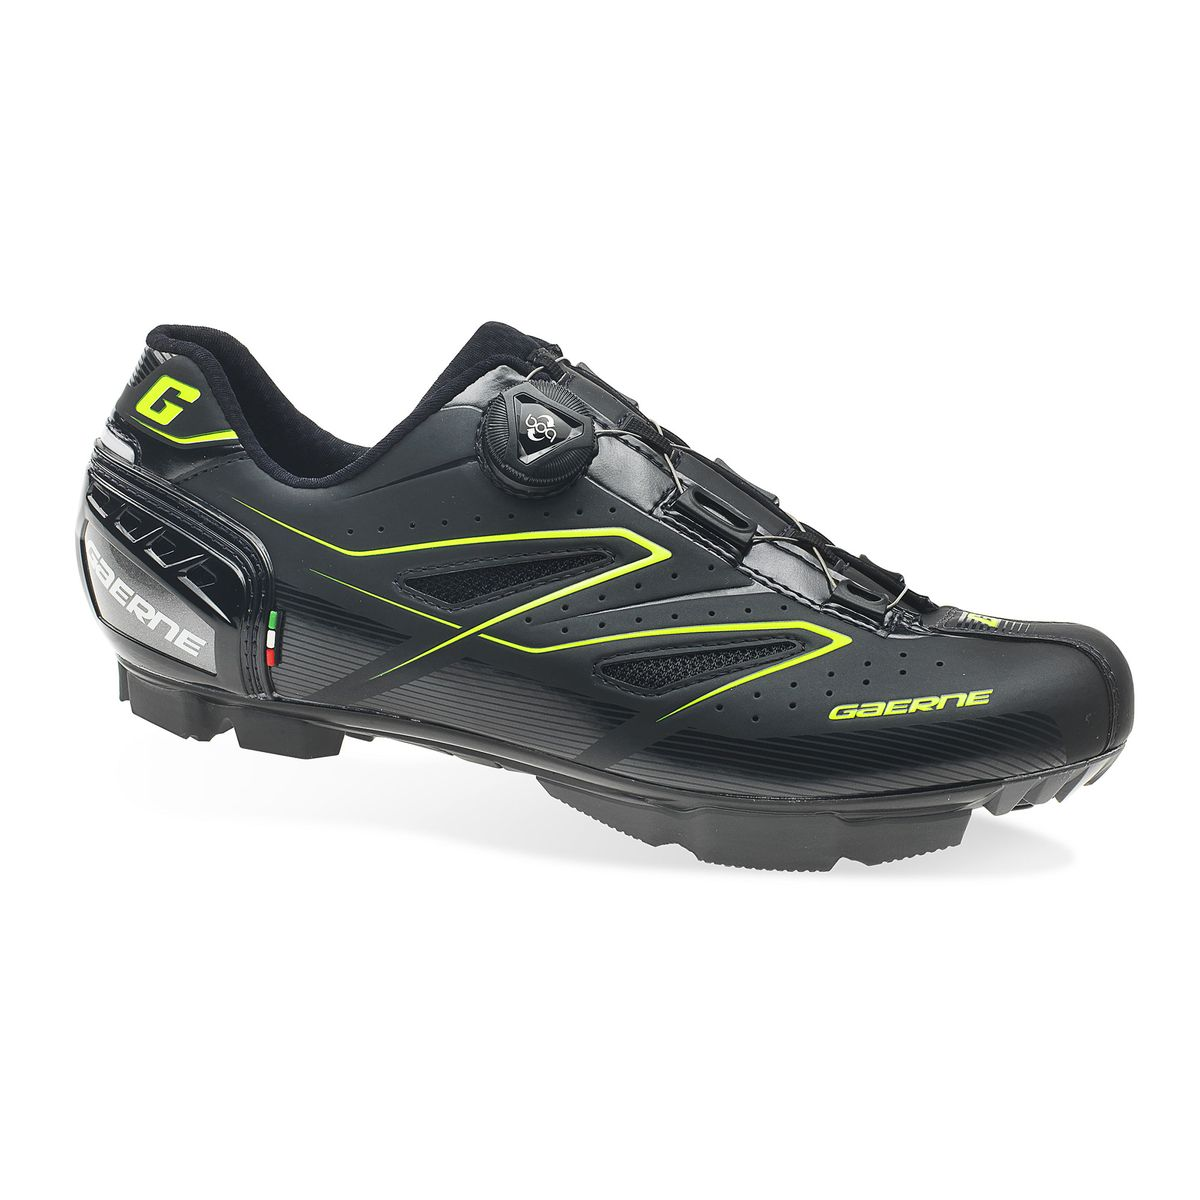 G. HURRICANE MTB shoes